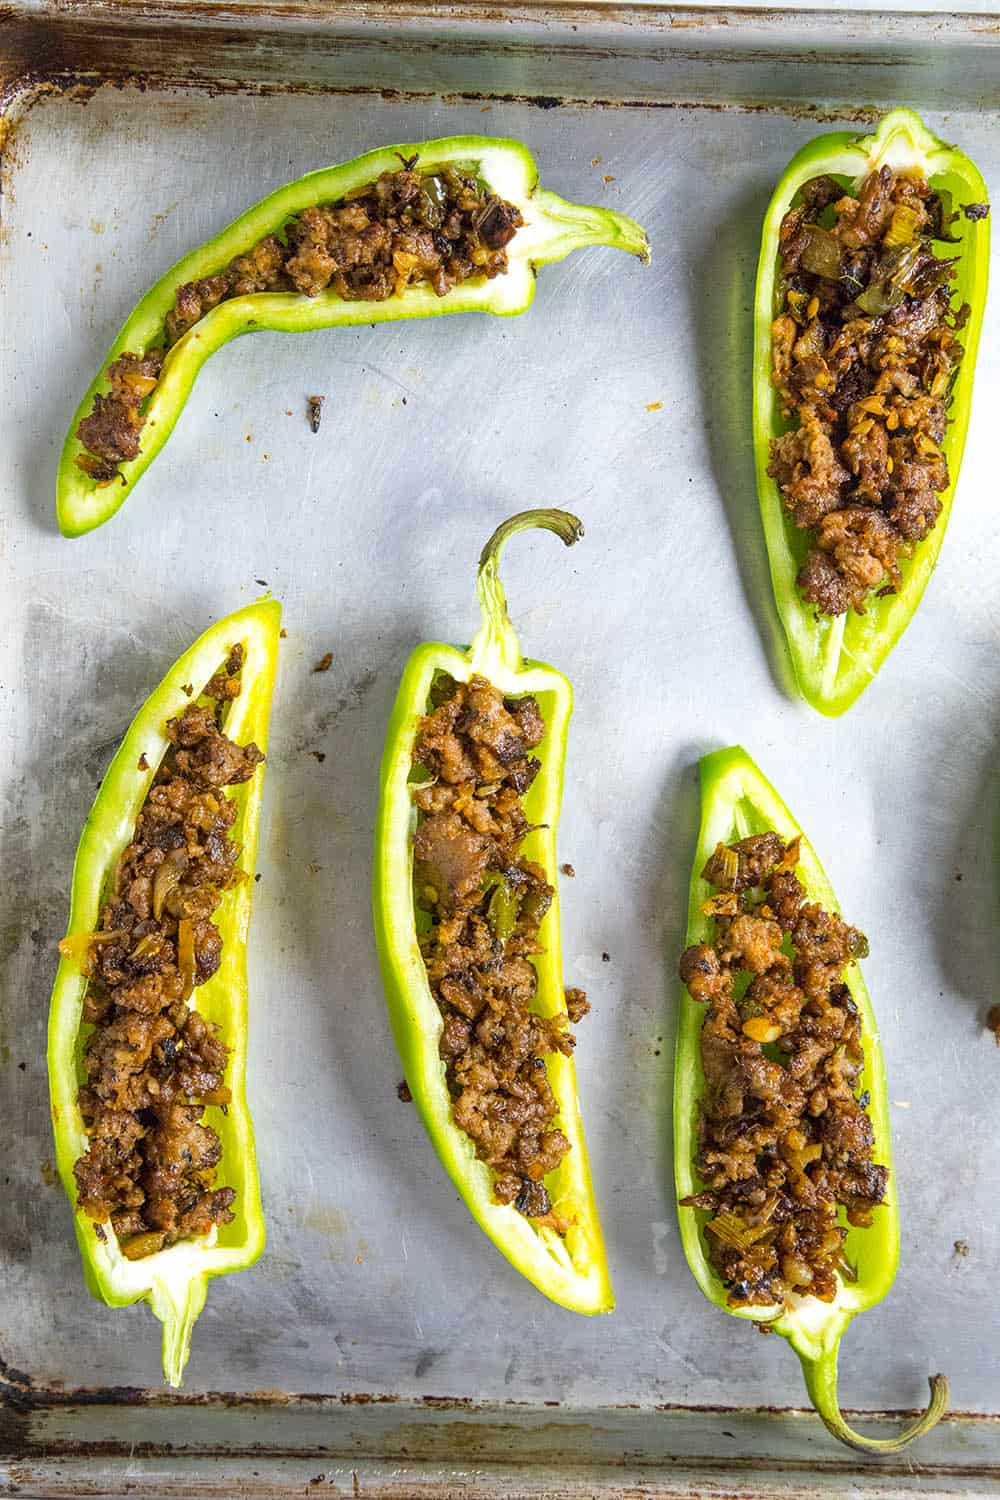 Anaheim peppers stuffed with spicy cooked sausage